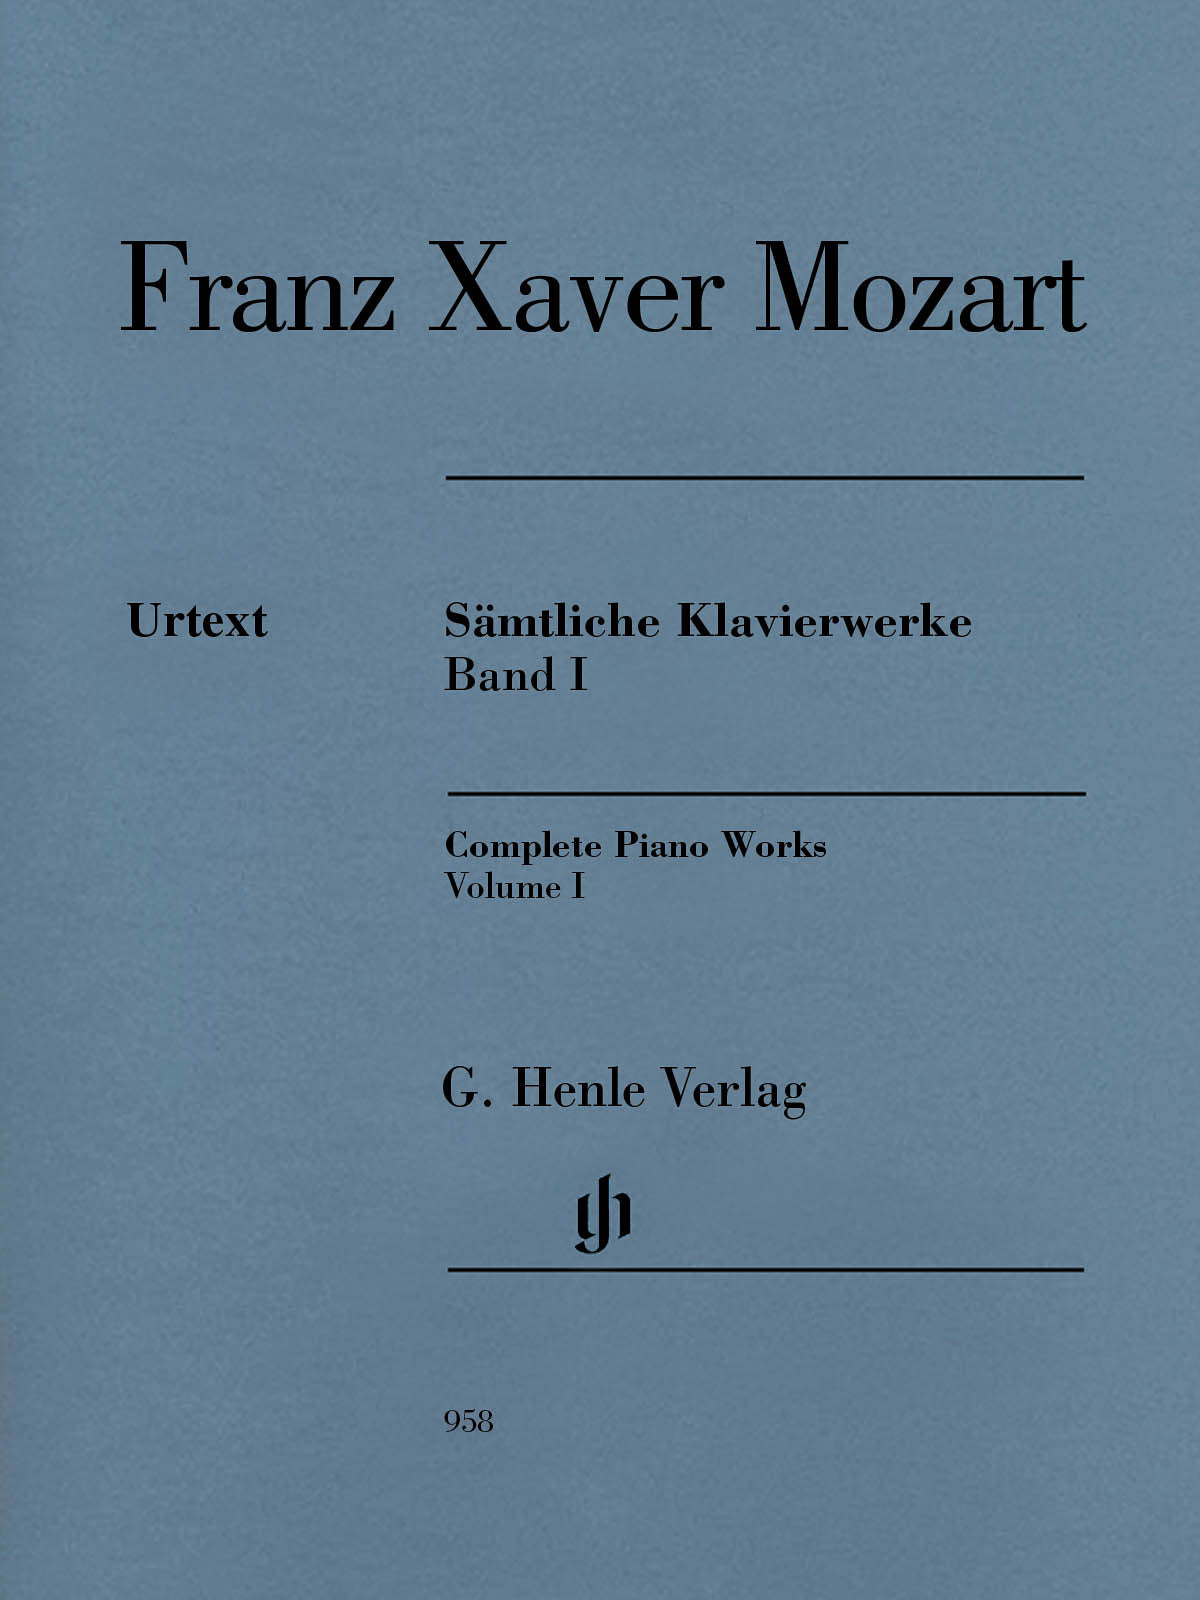 F. X. Mozart: Complete Piano Works - Volume 1